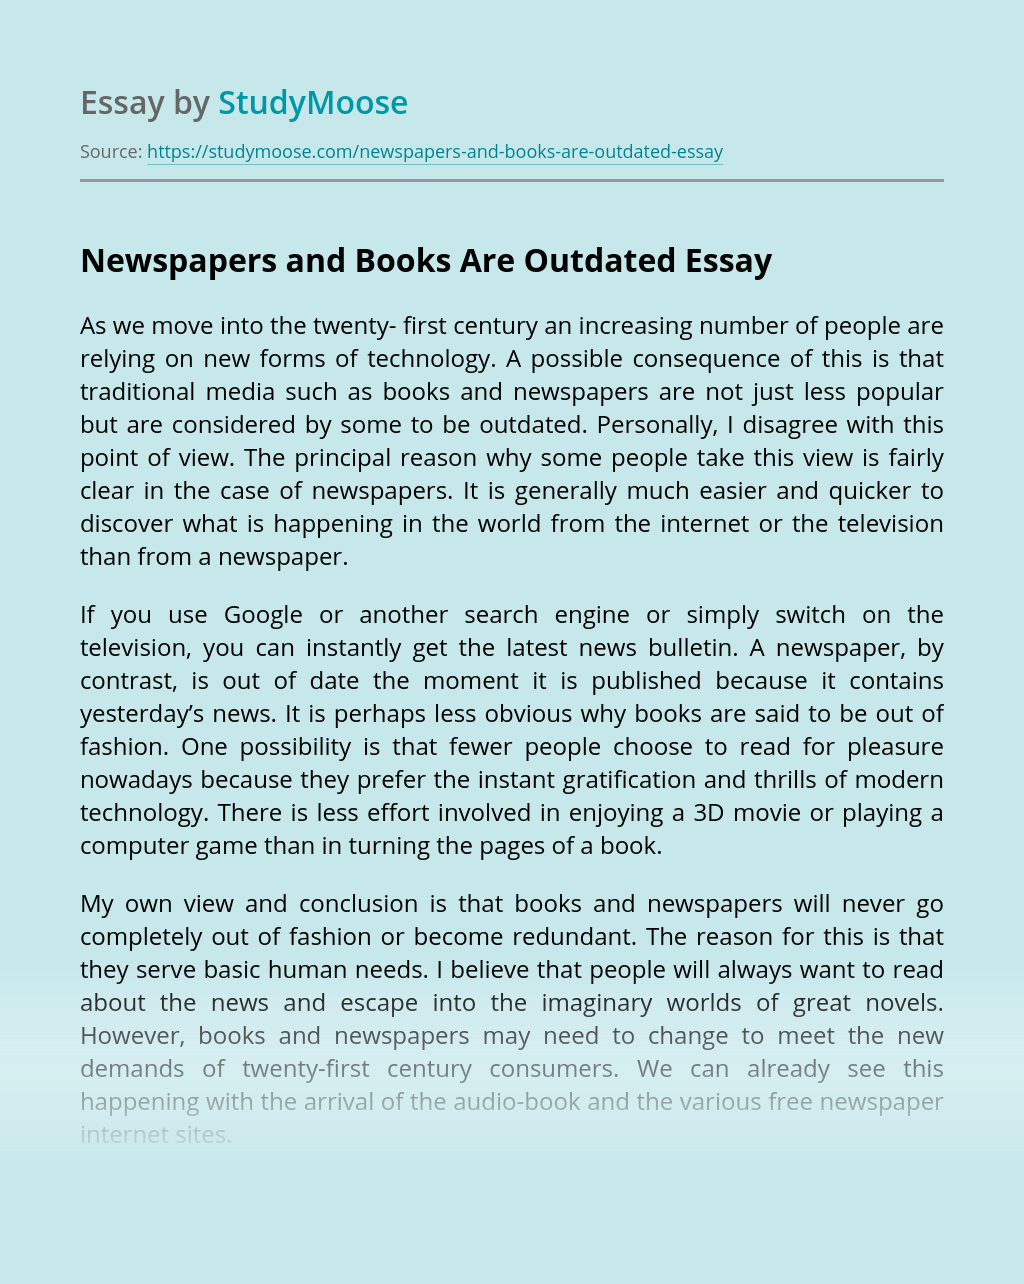 Newspapers and Books Are Outdated